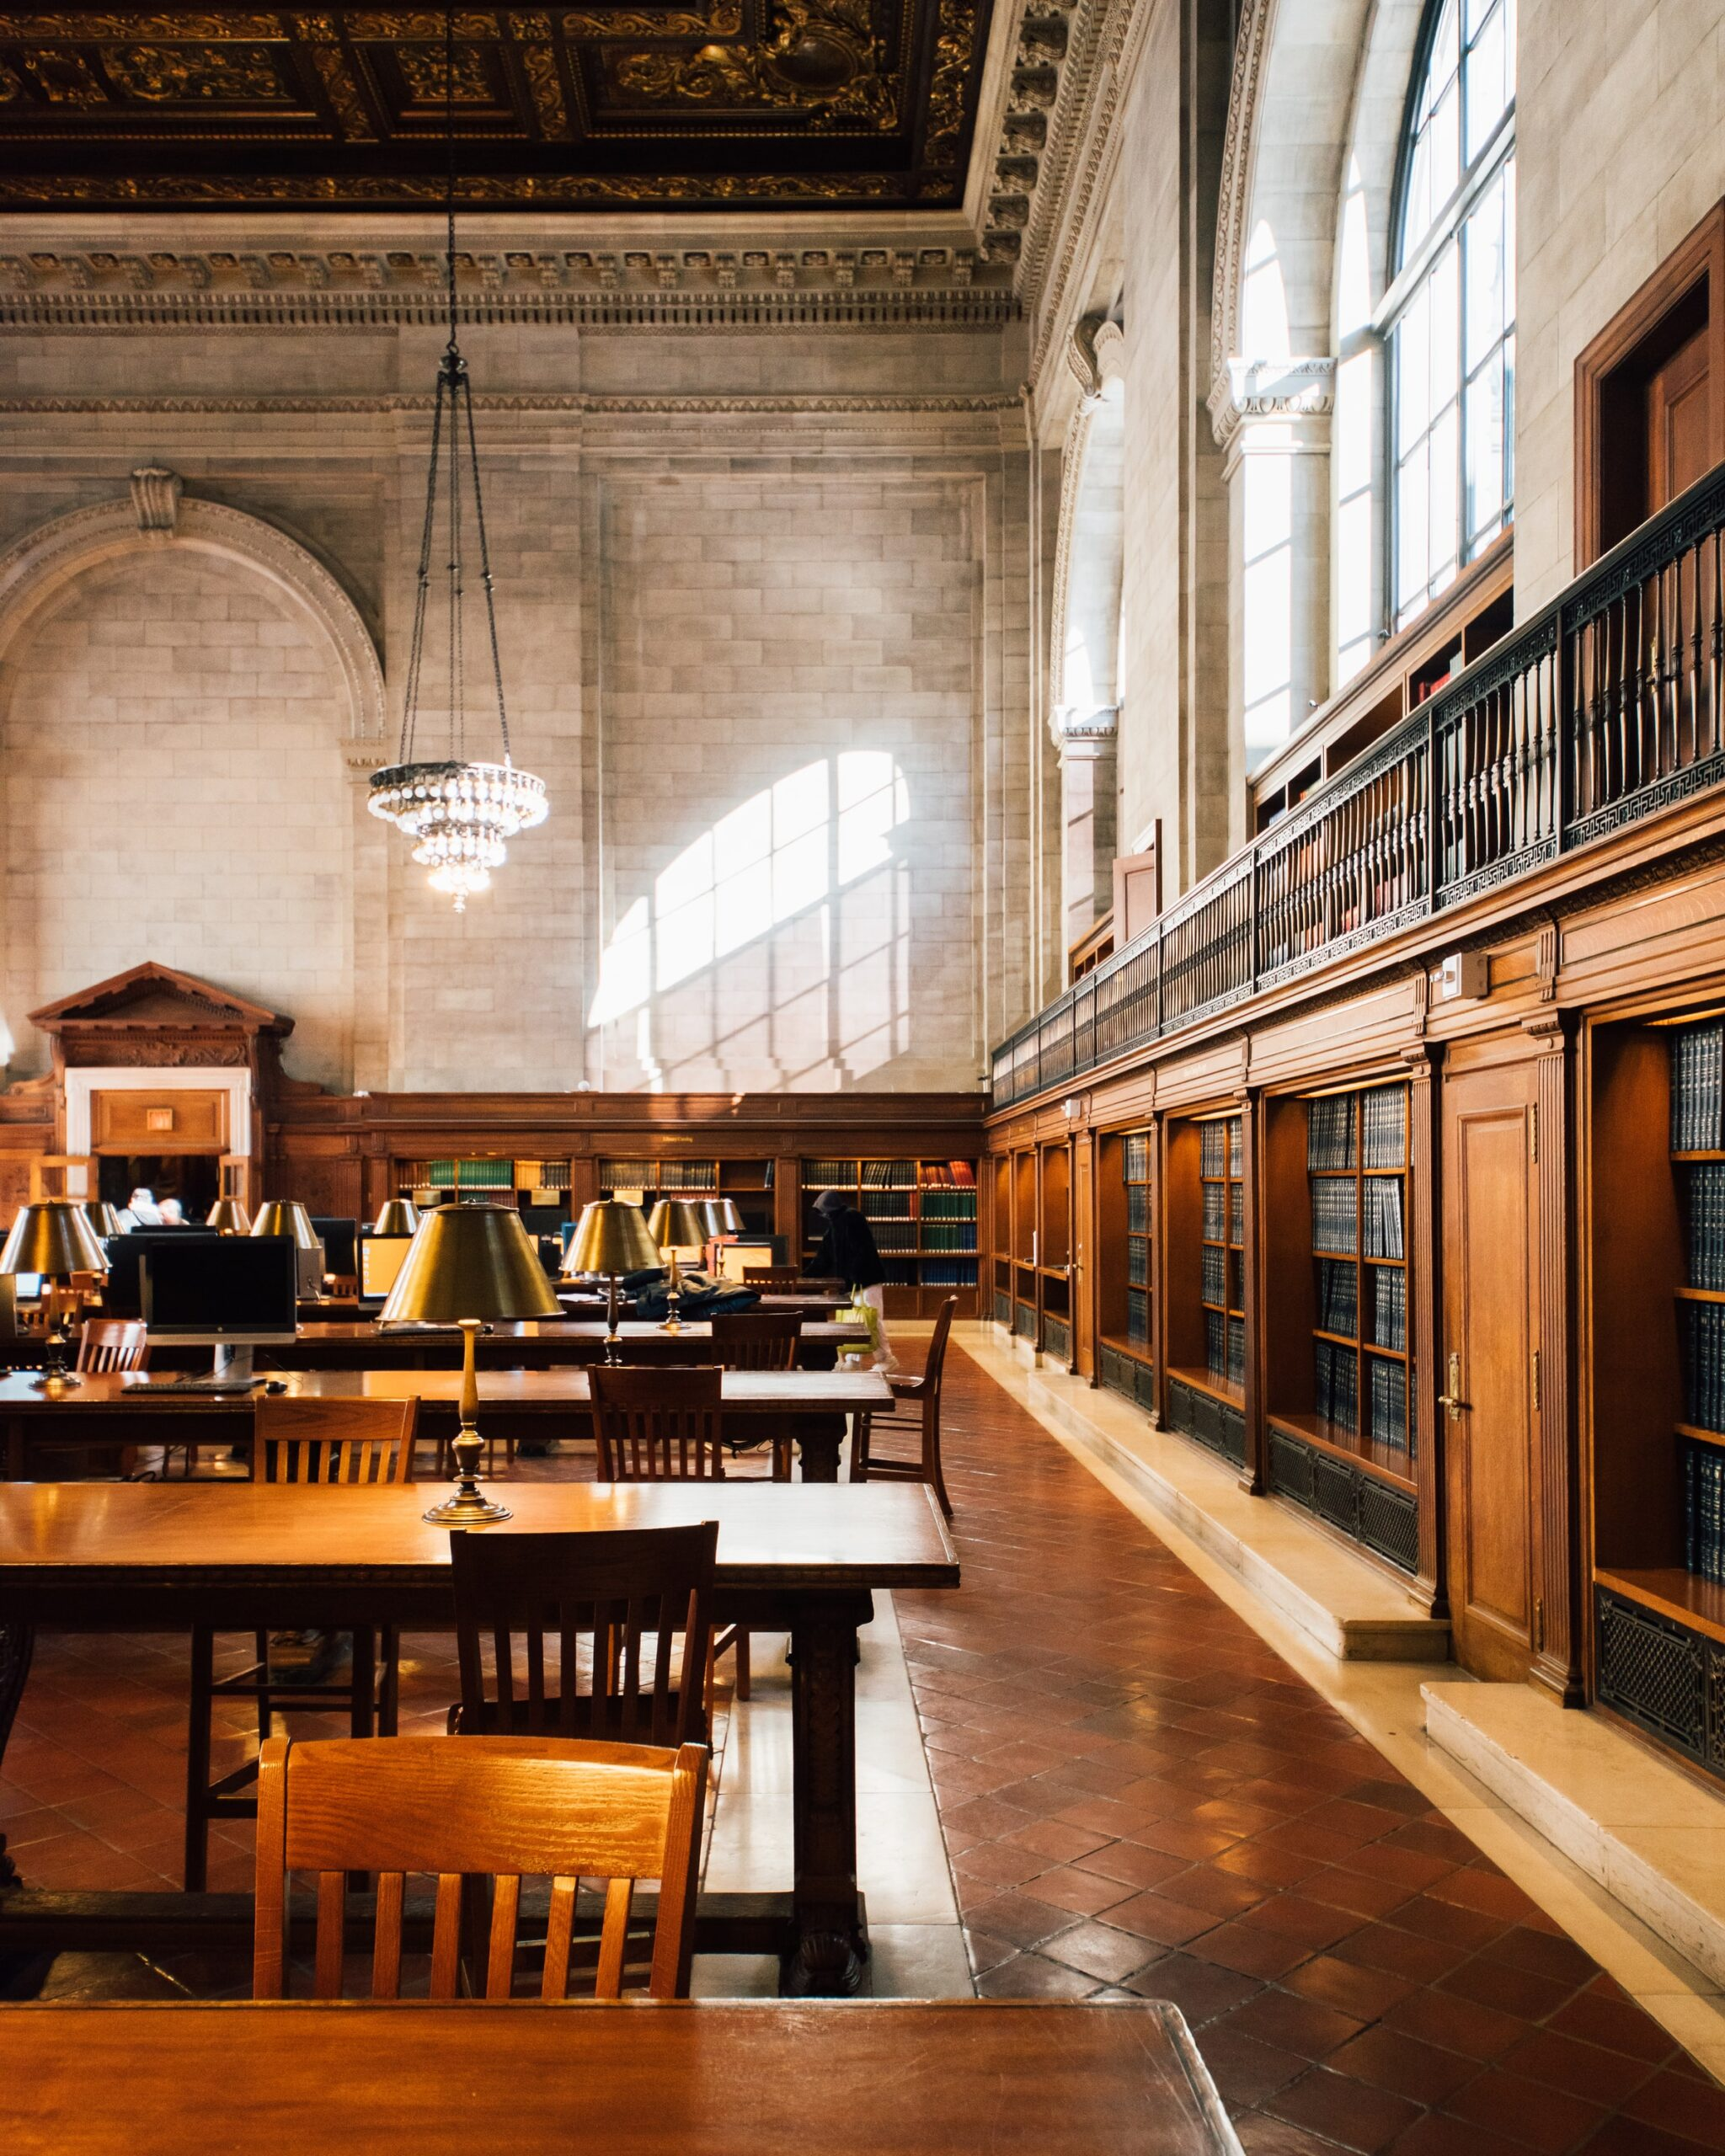 The 5 Best Libraries In Dublin For Studying